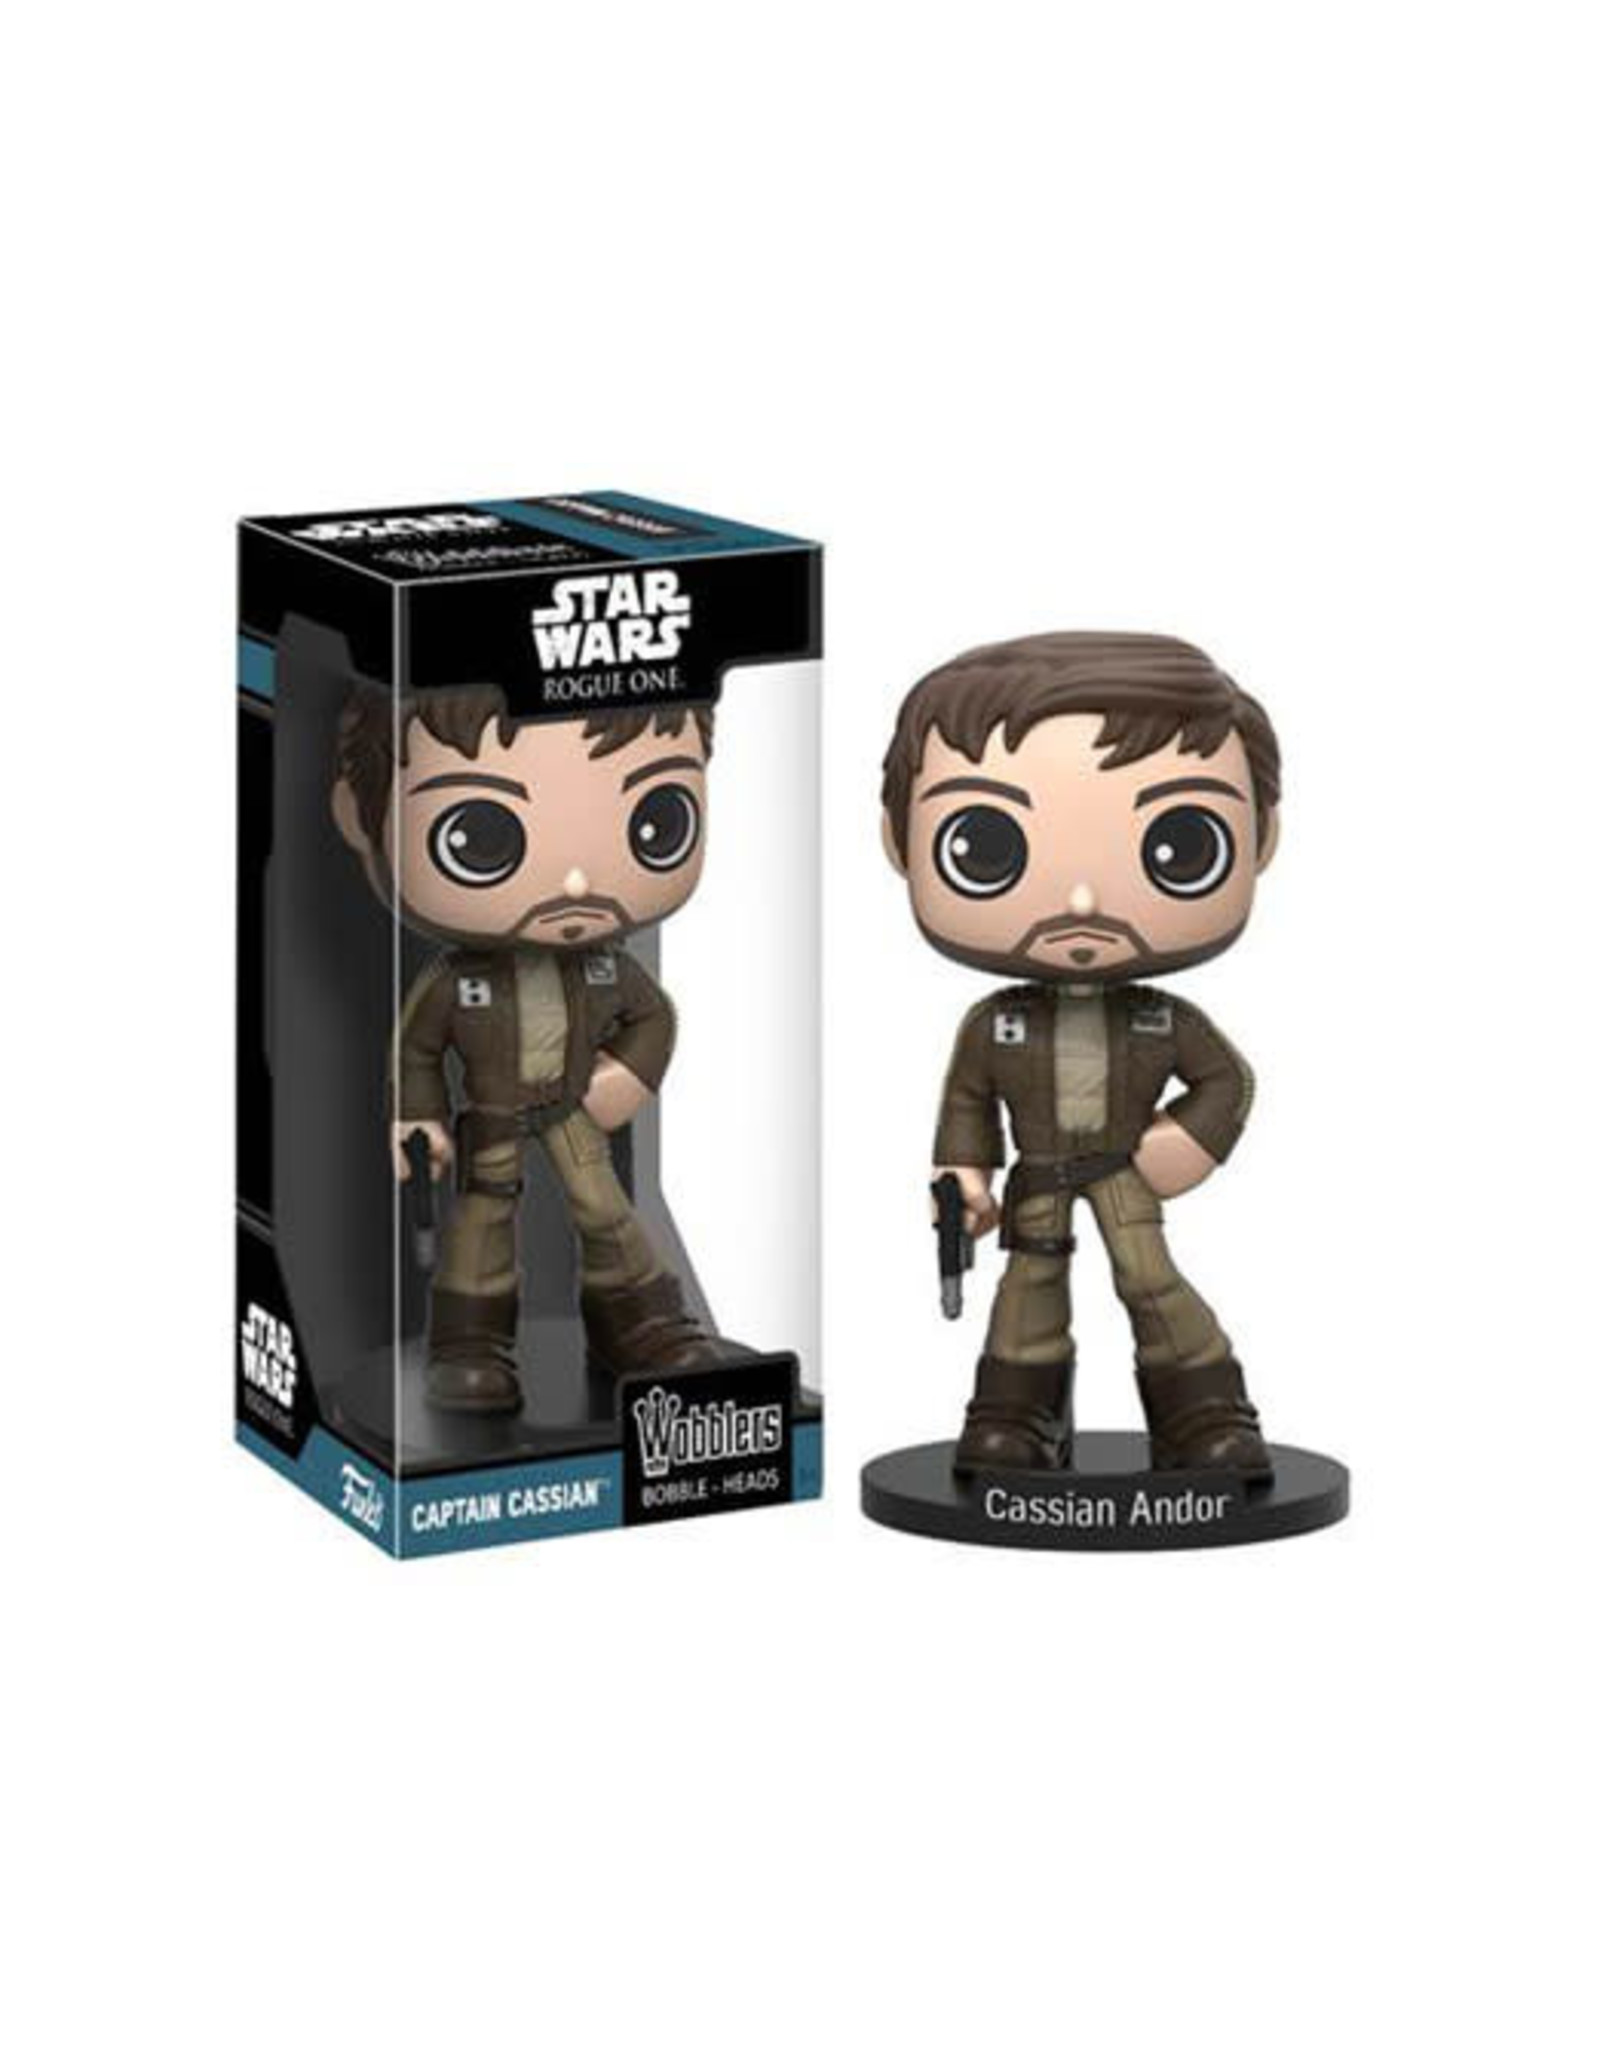 STAR WARS ROGUE ONE - Wobbler - Cassian Andor - 16cm